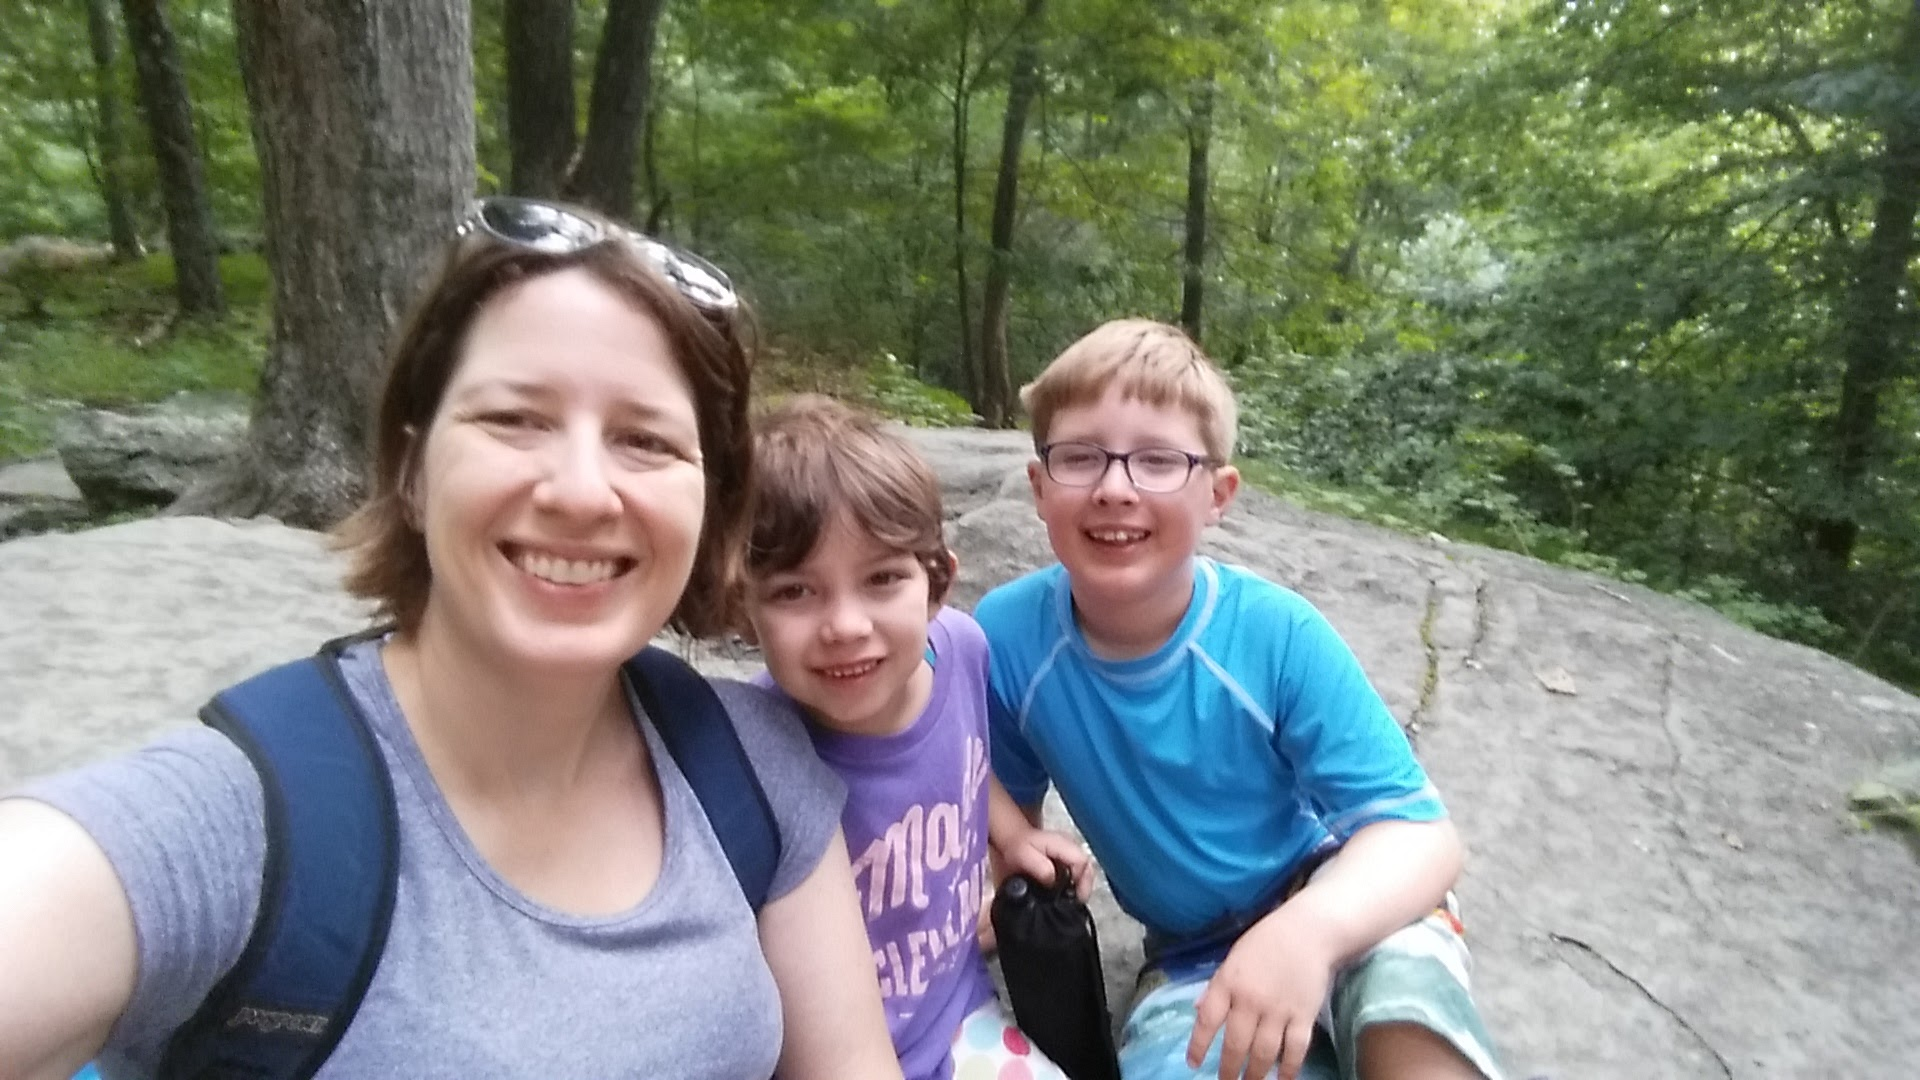 Elizabeth and her kids hiking at Cumberland Falls State Park.